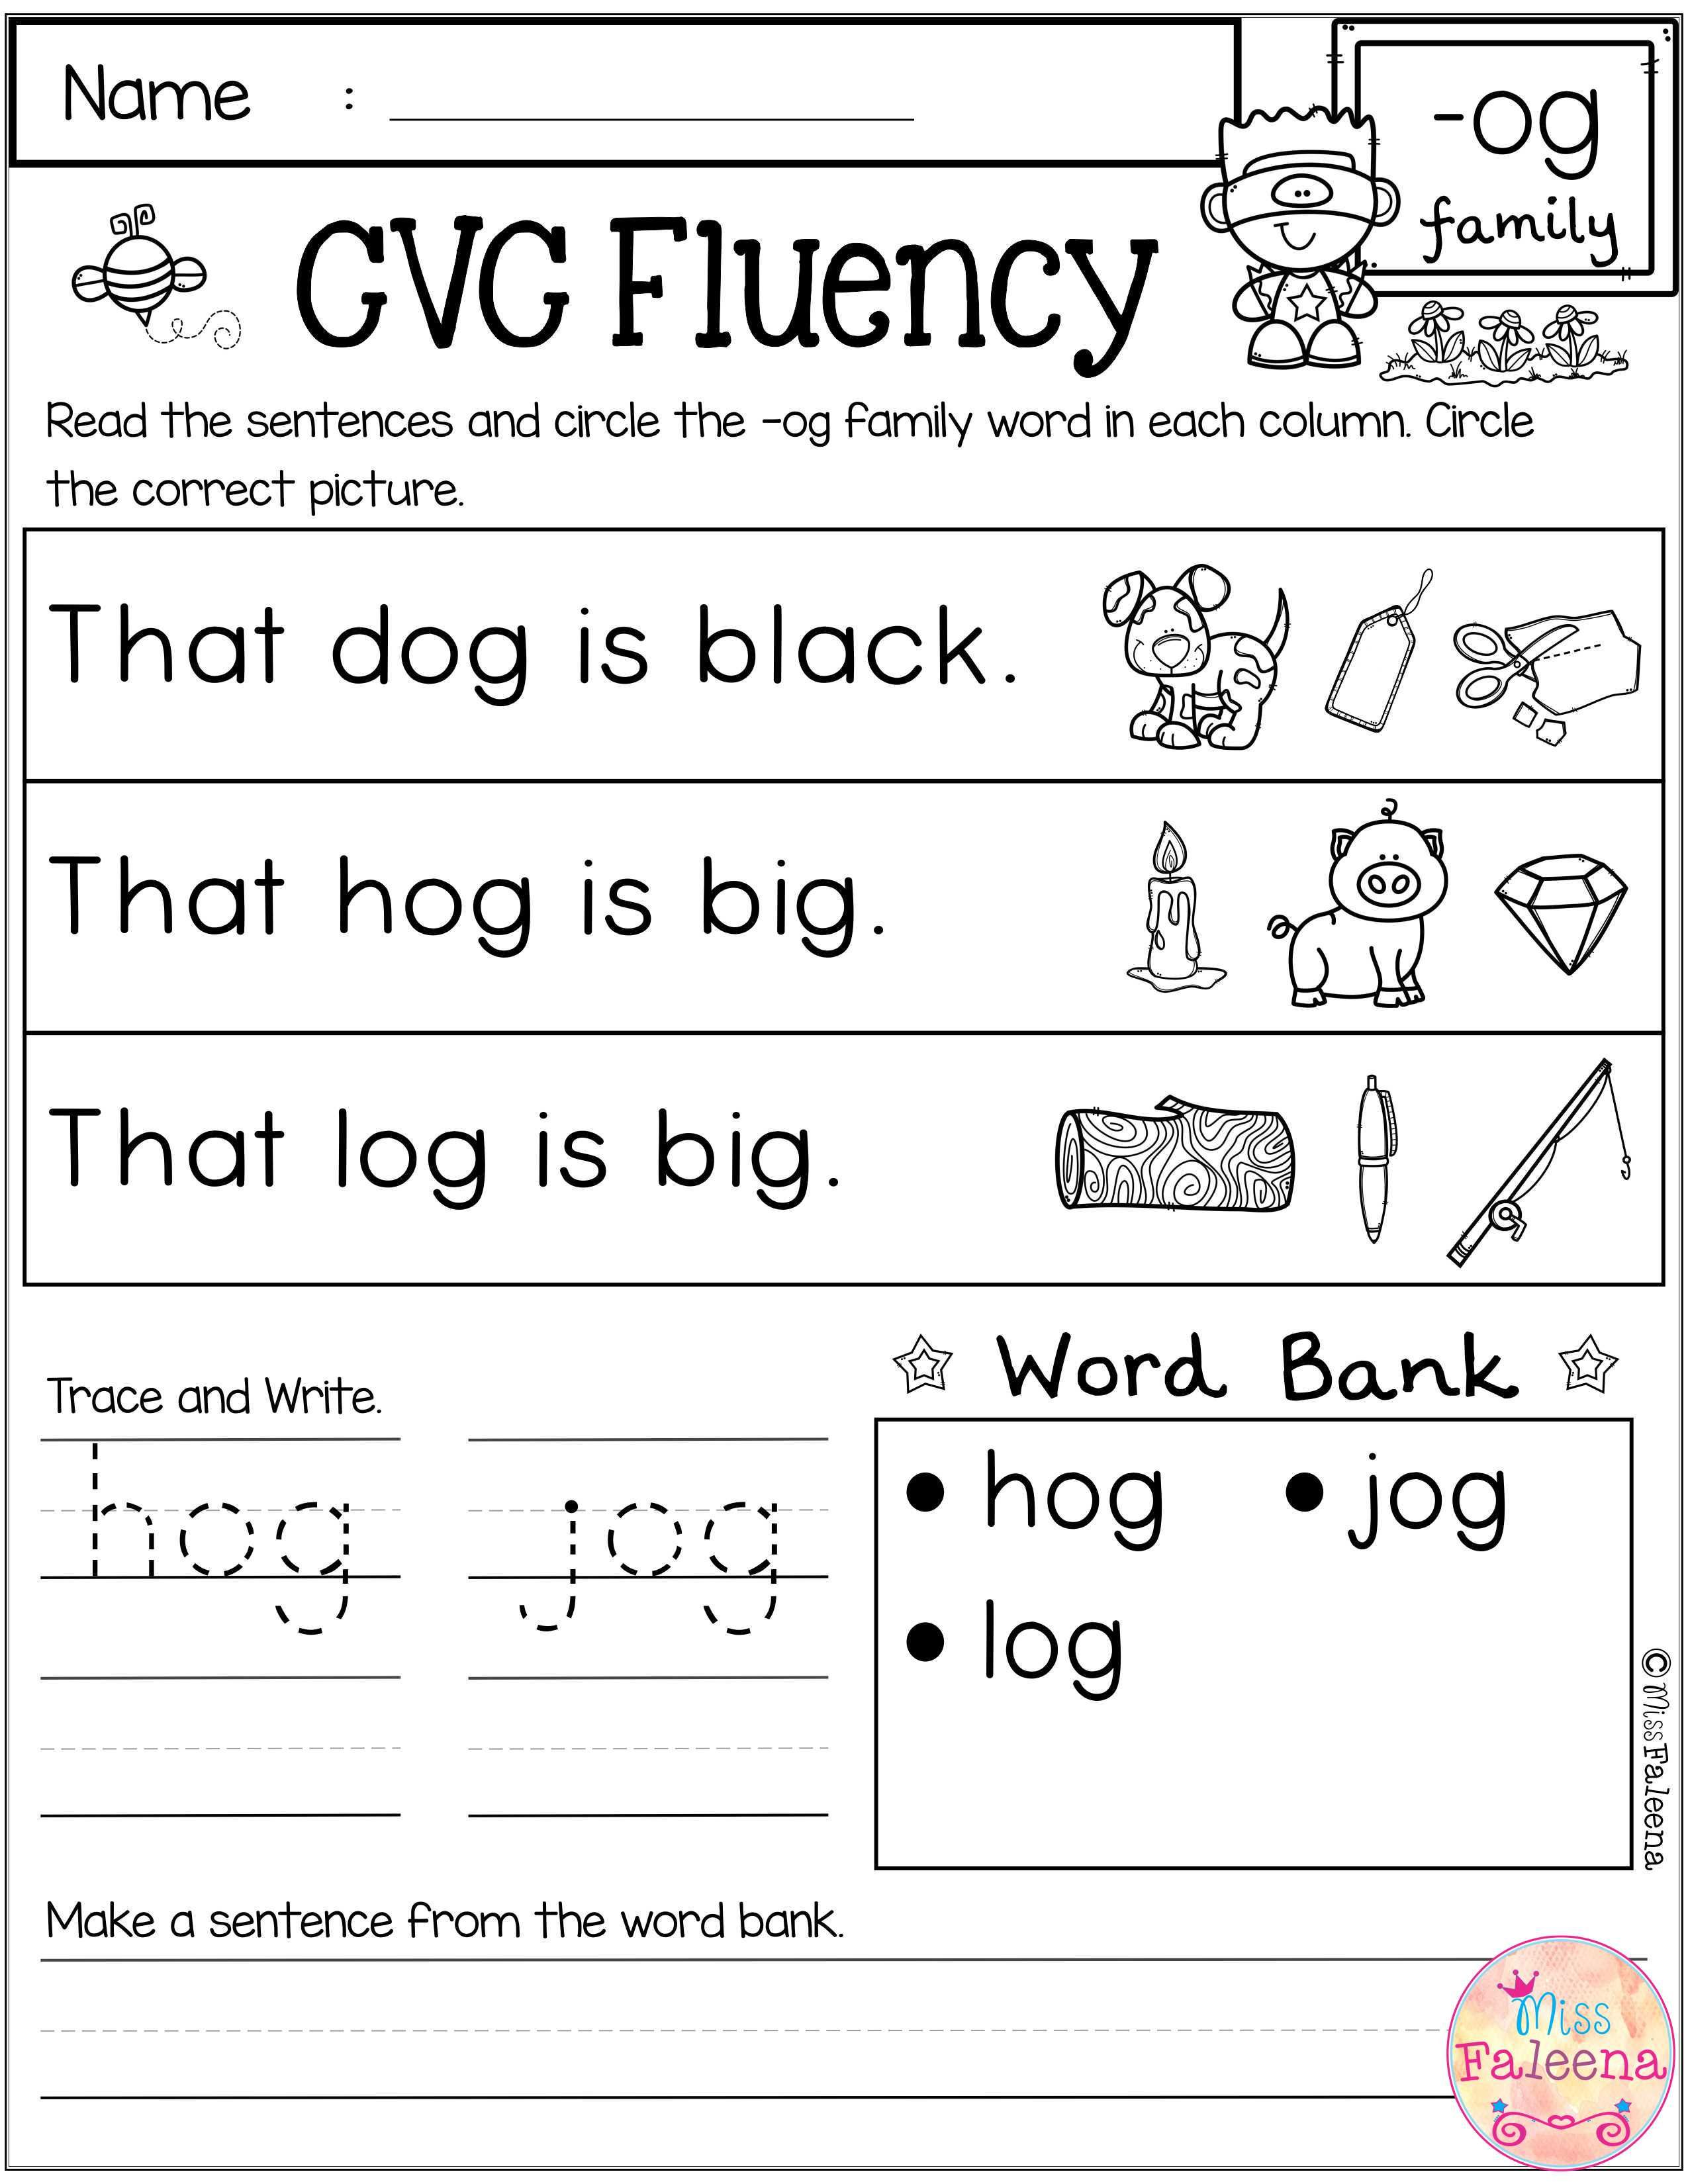 Free Cvc Fluency These Worksheets Help Build Fluency With Tracing Writing And Reading Students Also Encou Cvc Worksheets First Grade Worksheets Cvc Fluency [ 3300 x 2550 Pixel ]